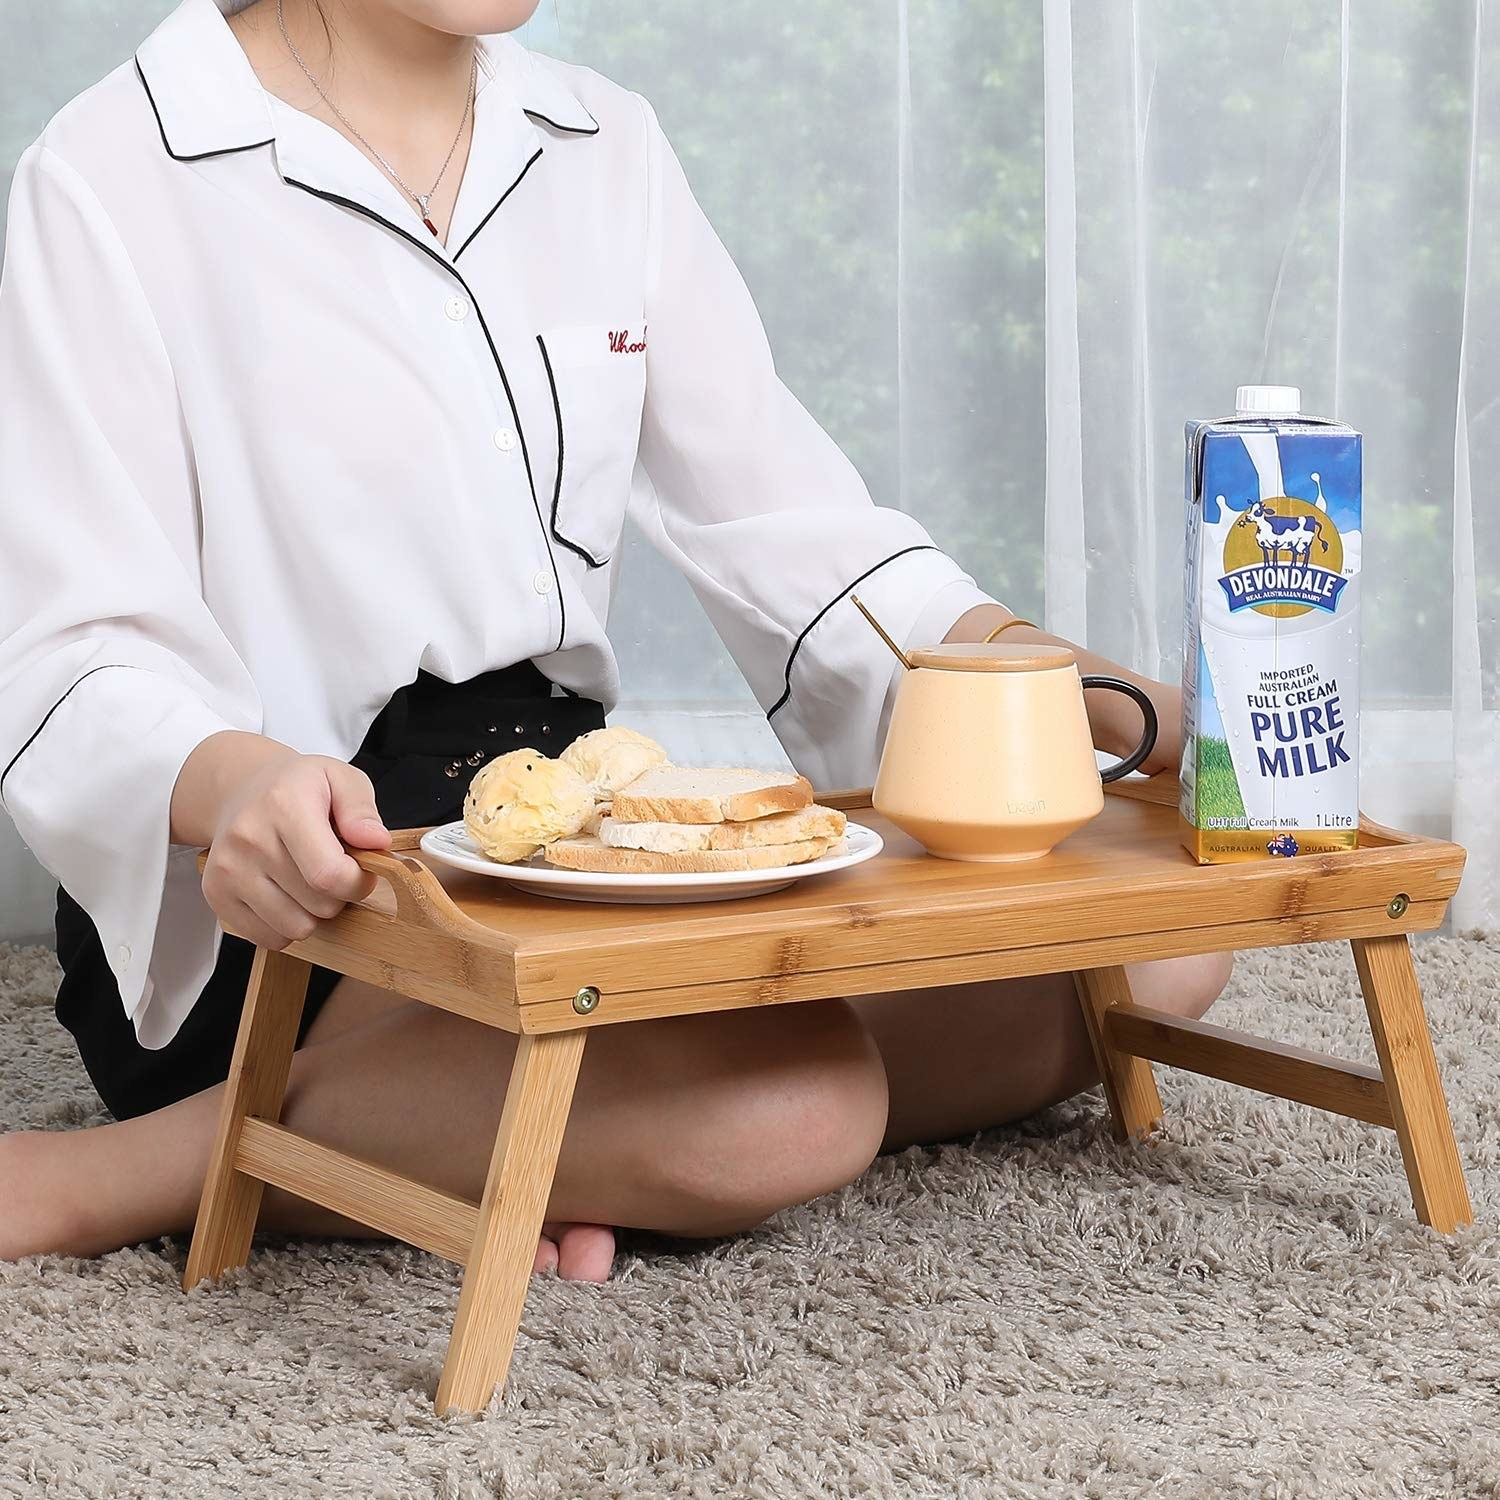 A model sitting on the floor with a wooden breakfast tray elevating food